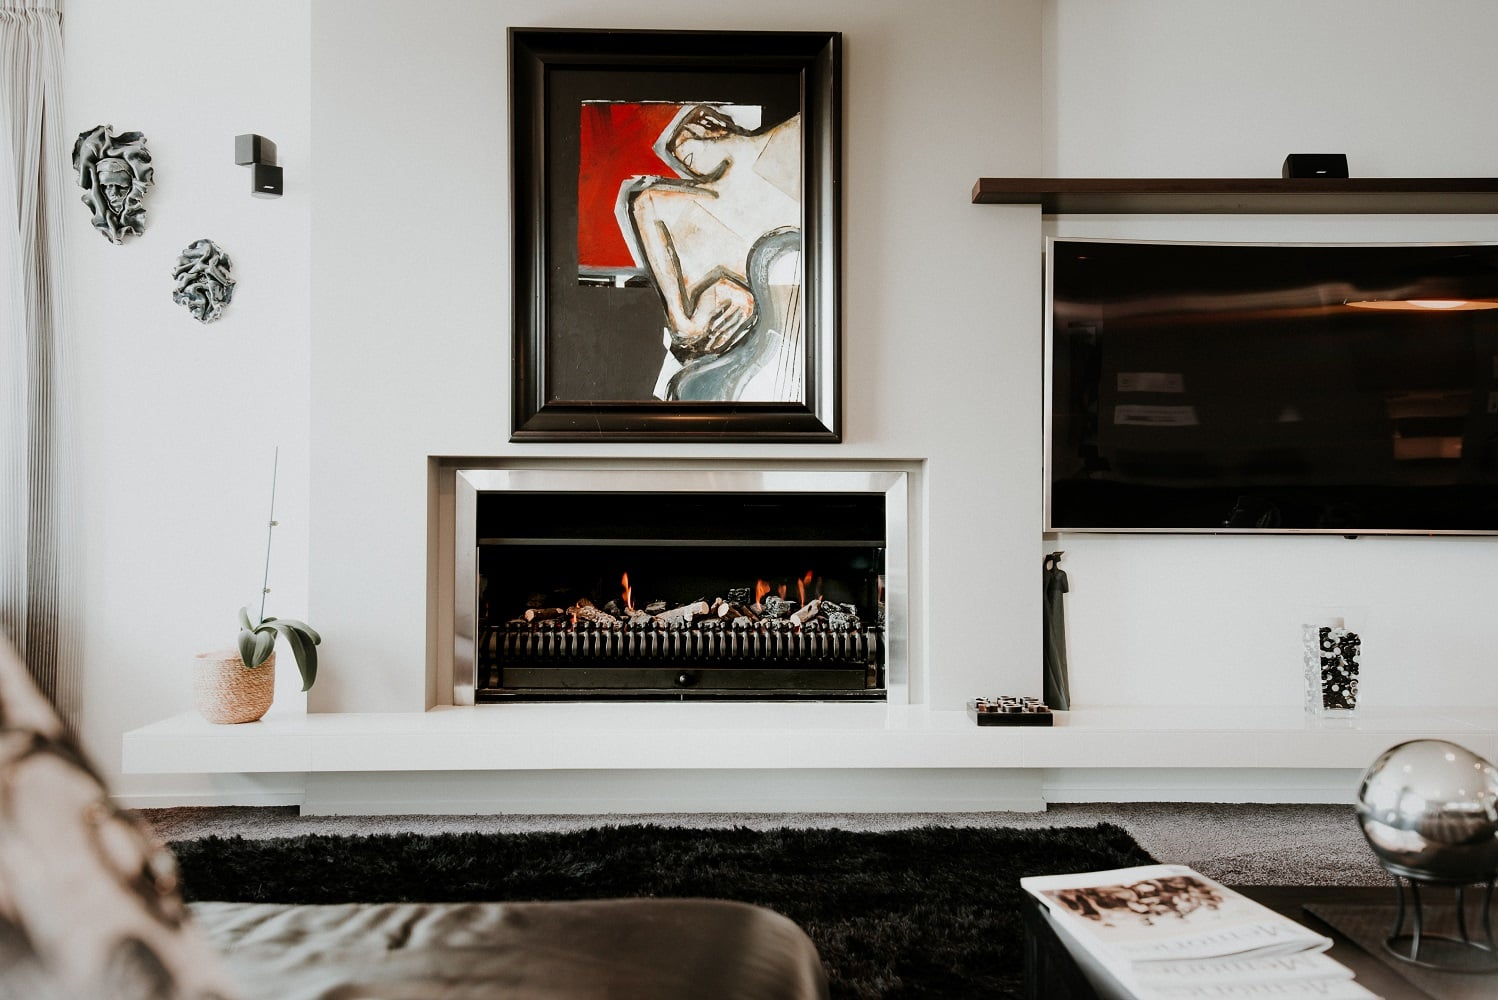 How to decorate your home interiors in black and white